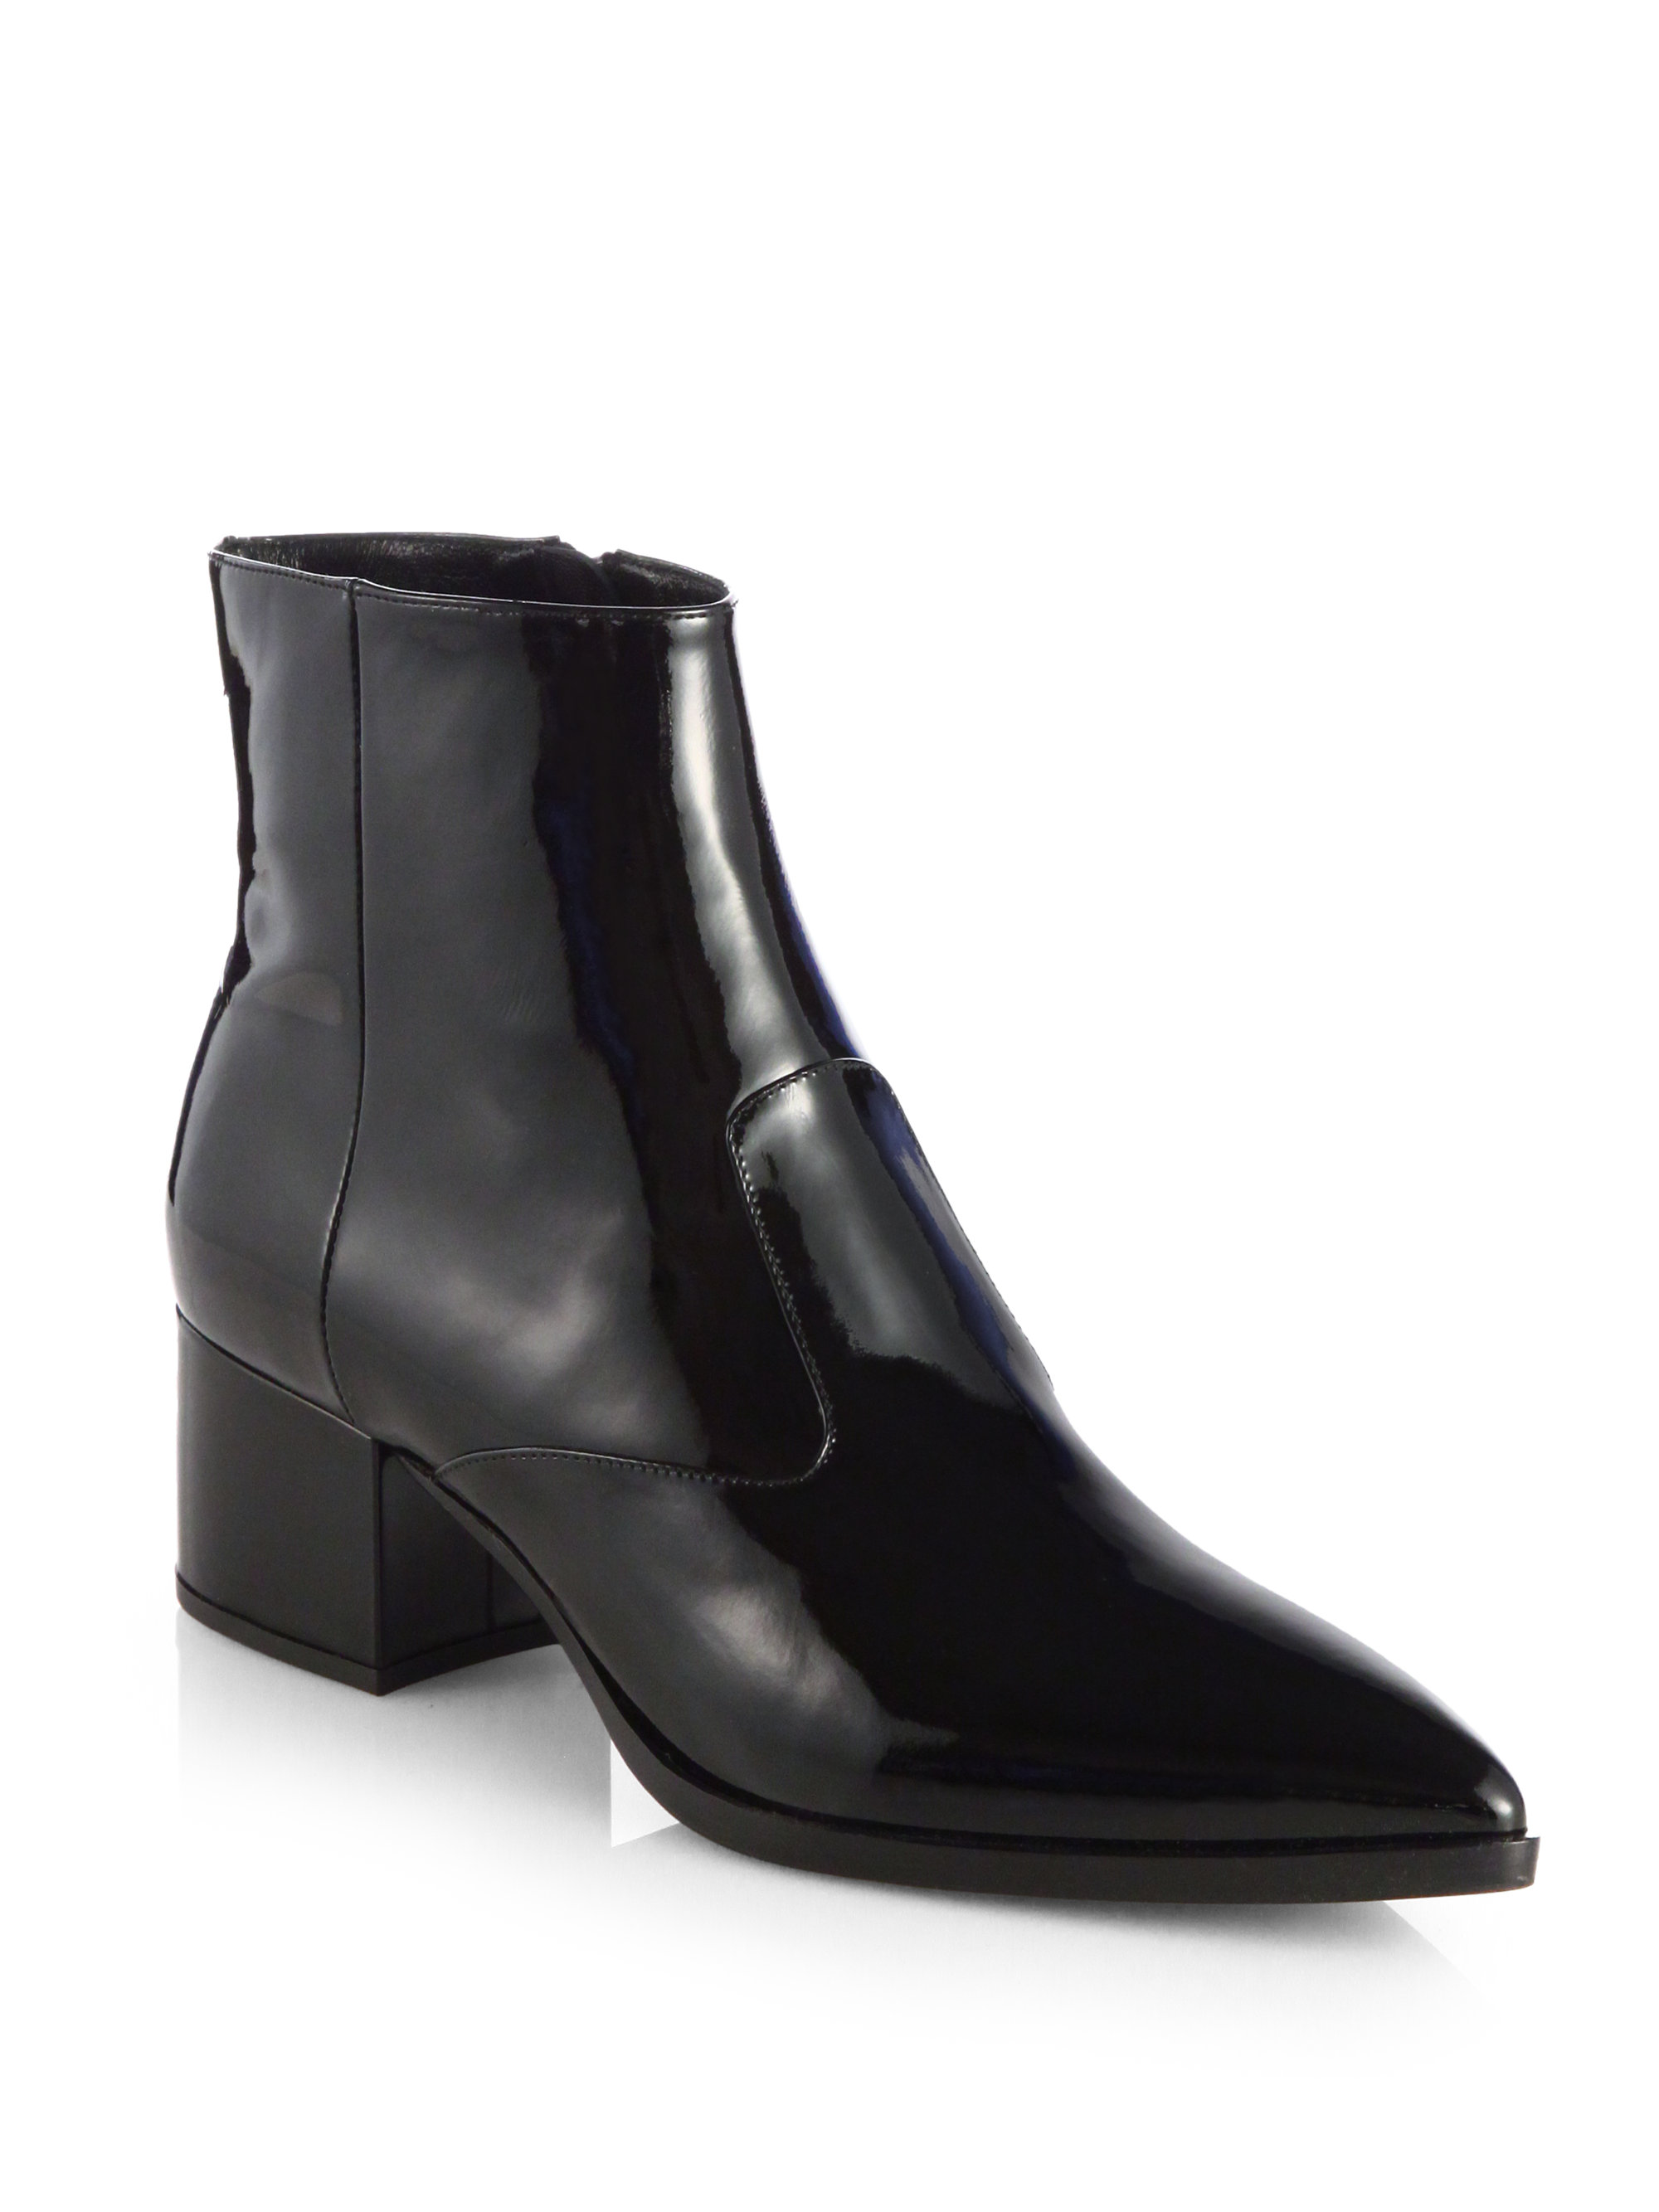 Miu Miu Patent Leather Platform Booties ebay sale online limited edition cheap price popular for sale buy cheap fashionable really online nRXp9K